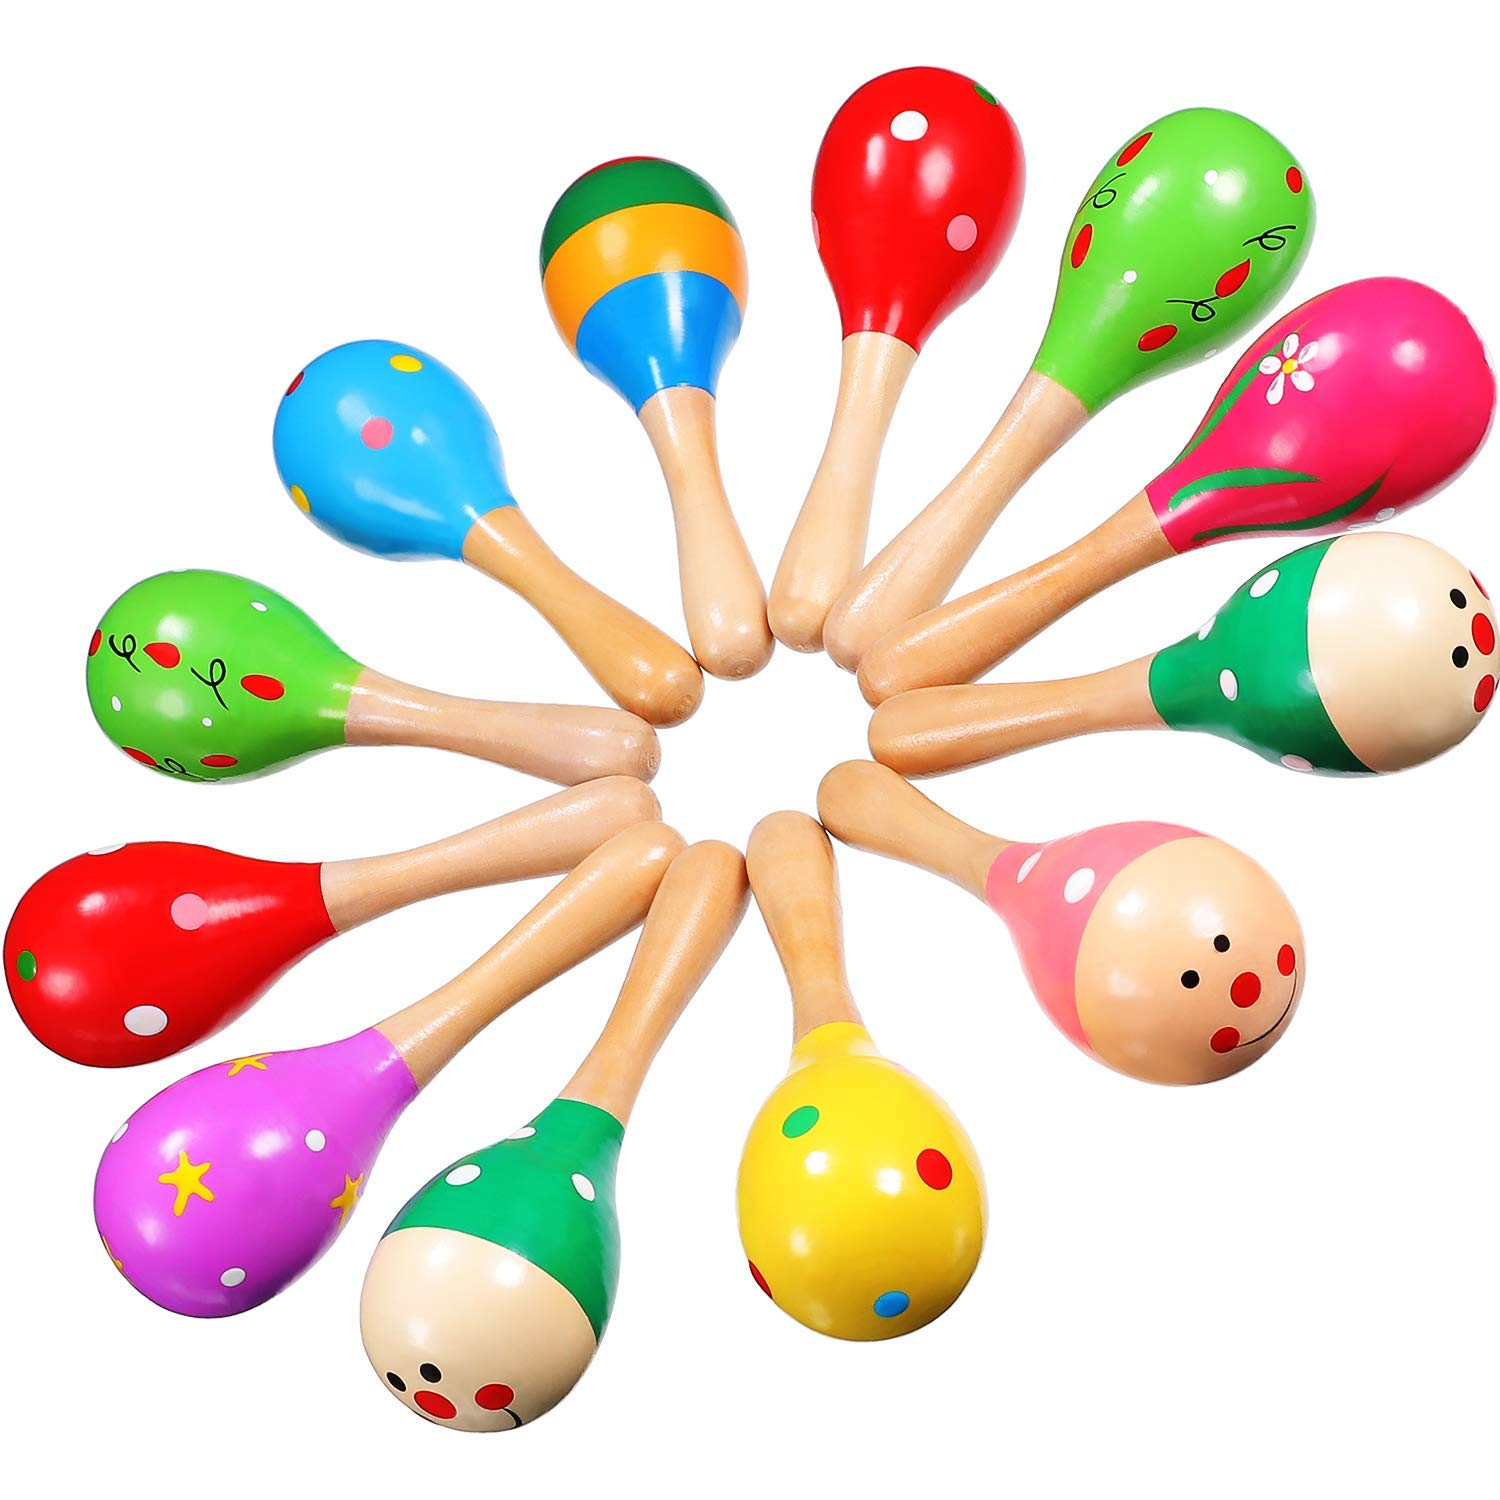 Musical Instruments Hot Sale Wooden Large Maracas Rumba Shakers Rattles Sand Hammer Percussion Instrument Musical Toy For Kid Children Party Games Parts & Accessories